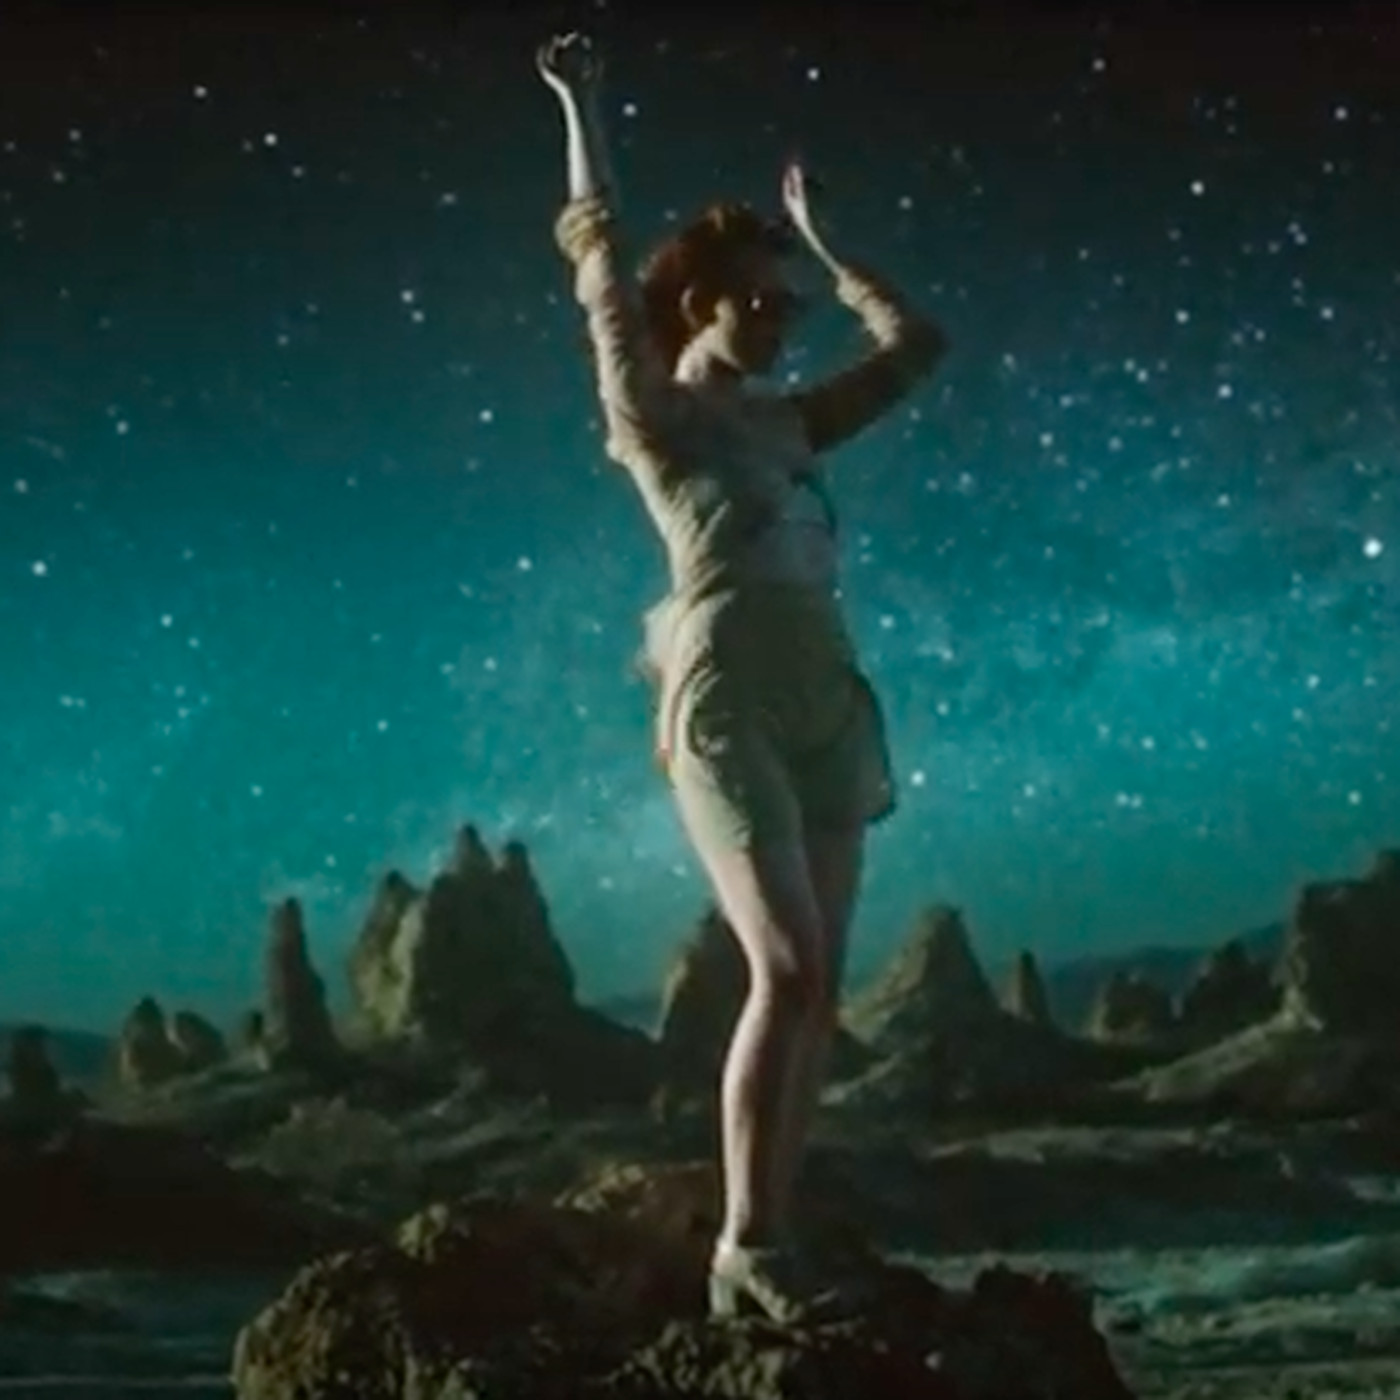 Lana Del Rey S New Video Is A Love Story Set In Outer Space The